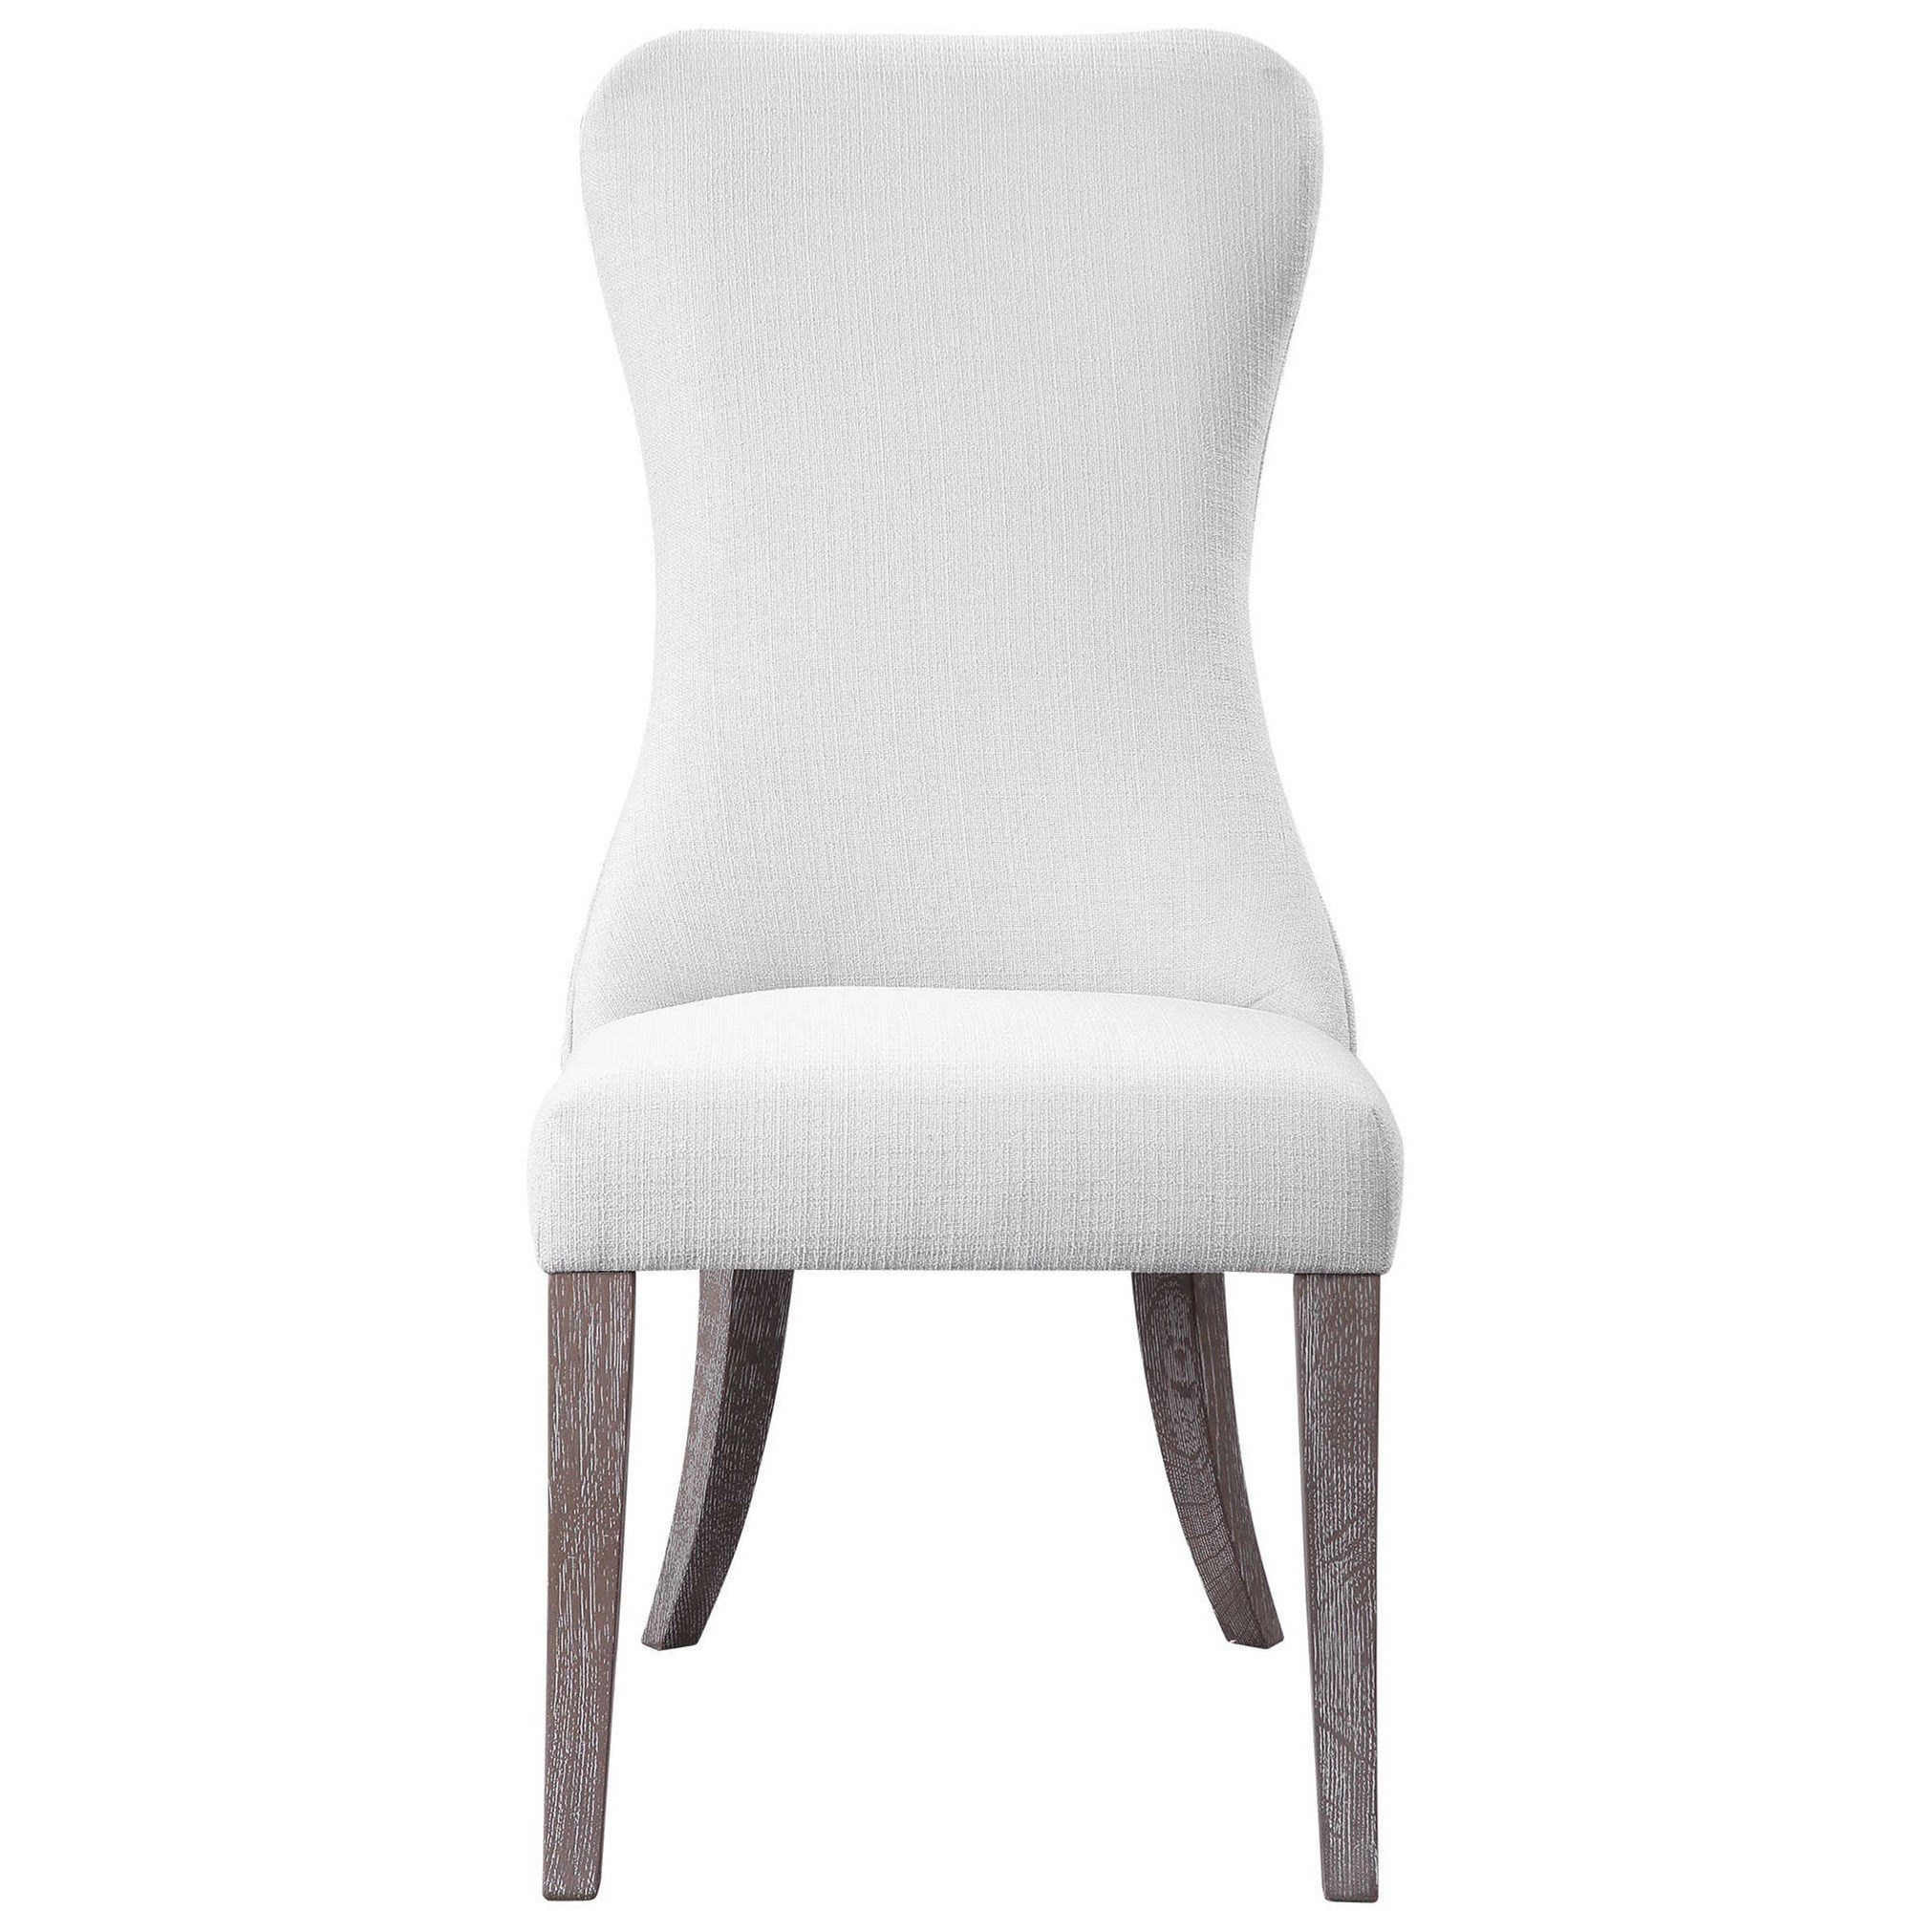 Accent Furniture - Accent Chairs Caledonia Armless Chair by Uttermost at Adcock Furniture